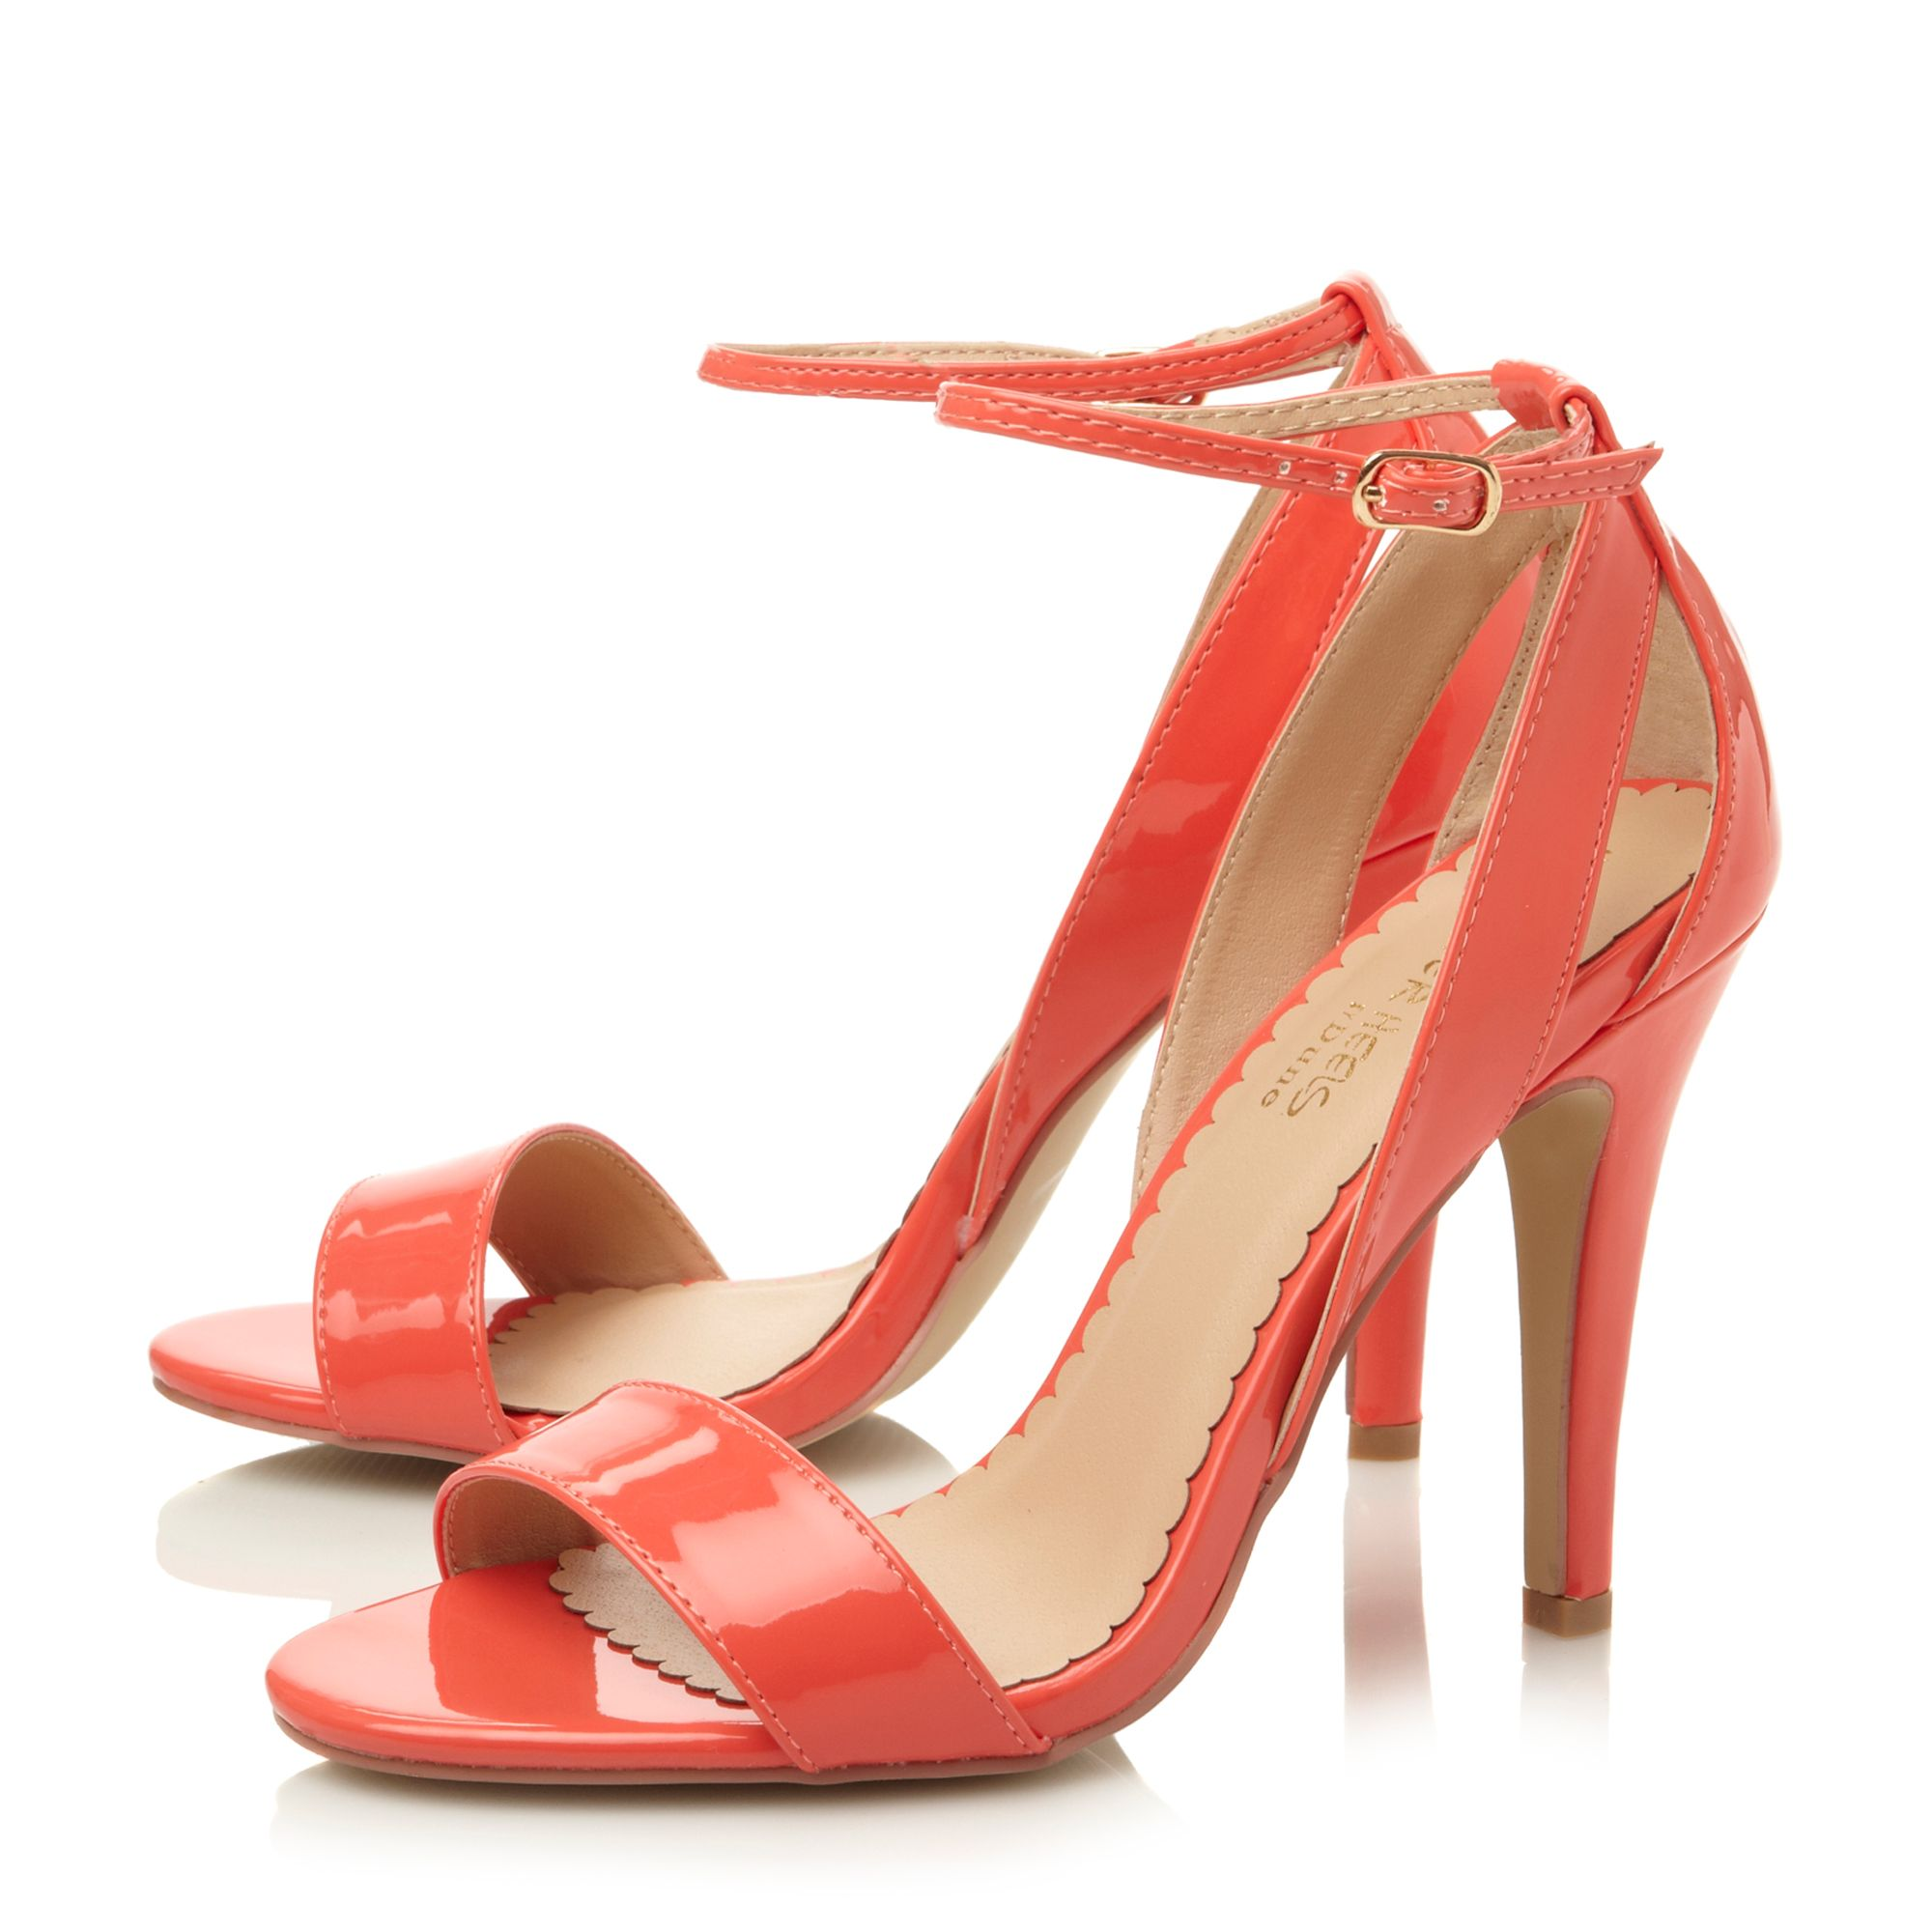 Hoola buckle stiletto dressy sandals